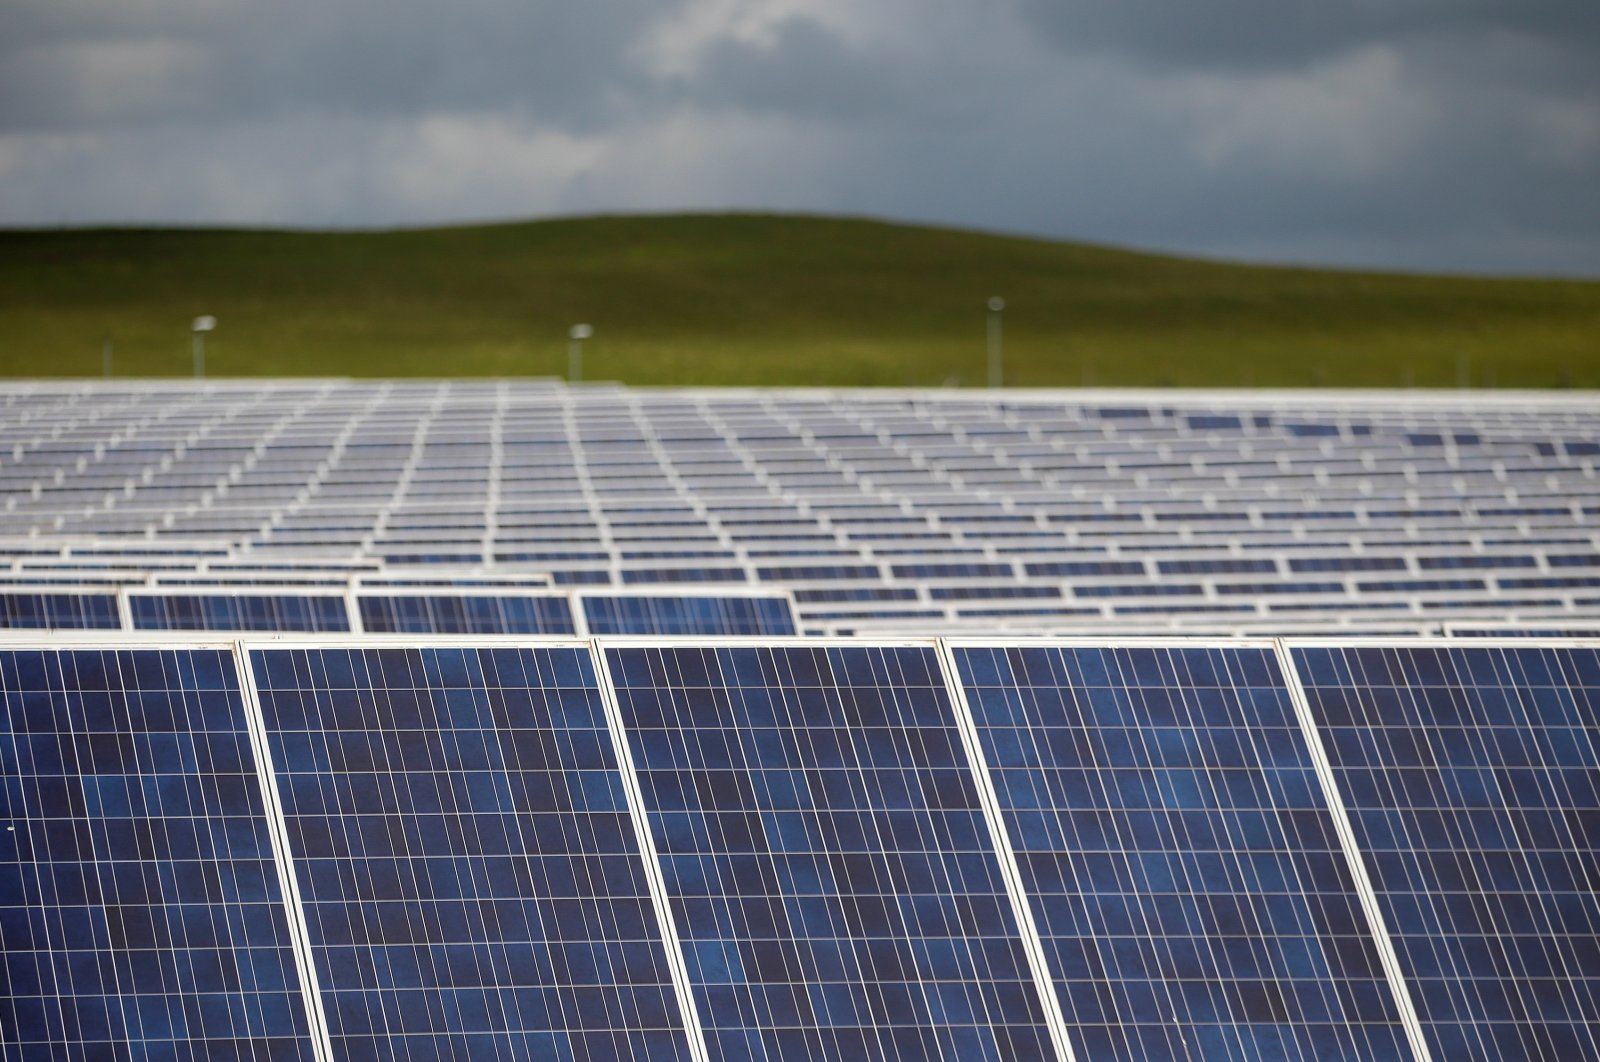 A solar power plant is seen in Canino, central Italy, April 27, 2016. (Reuters Photo)